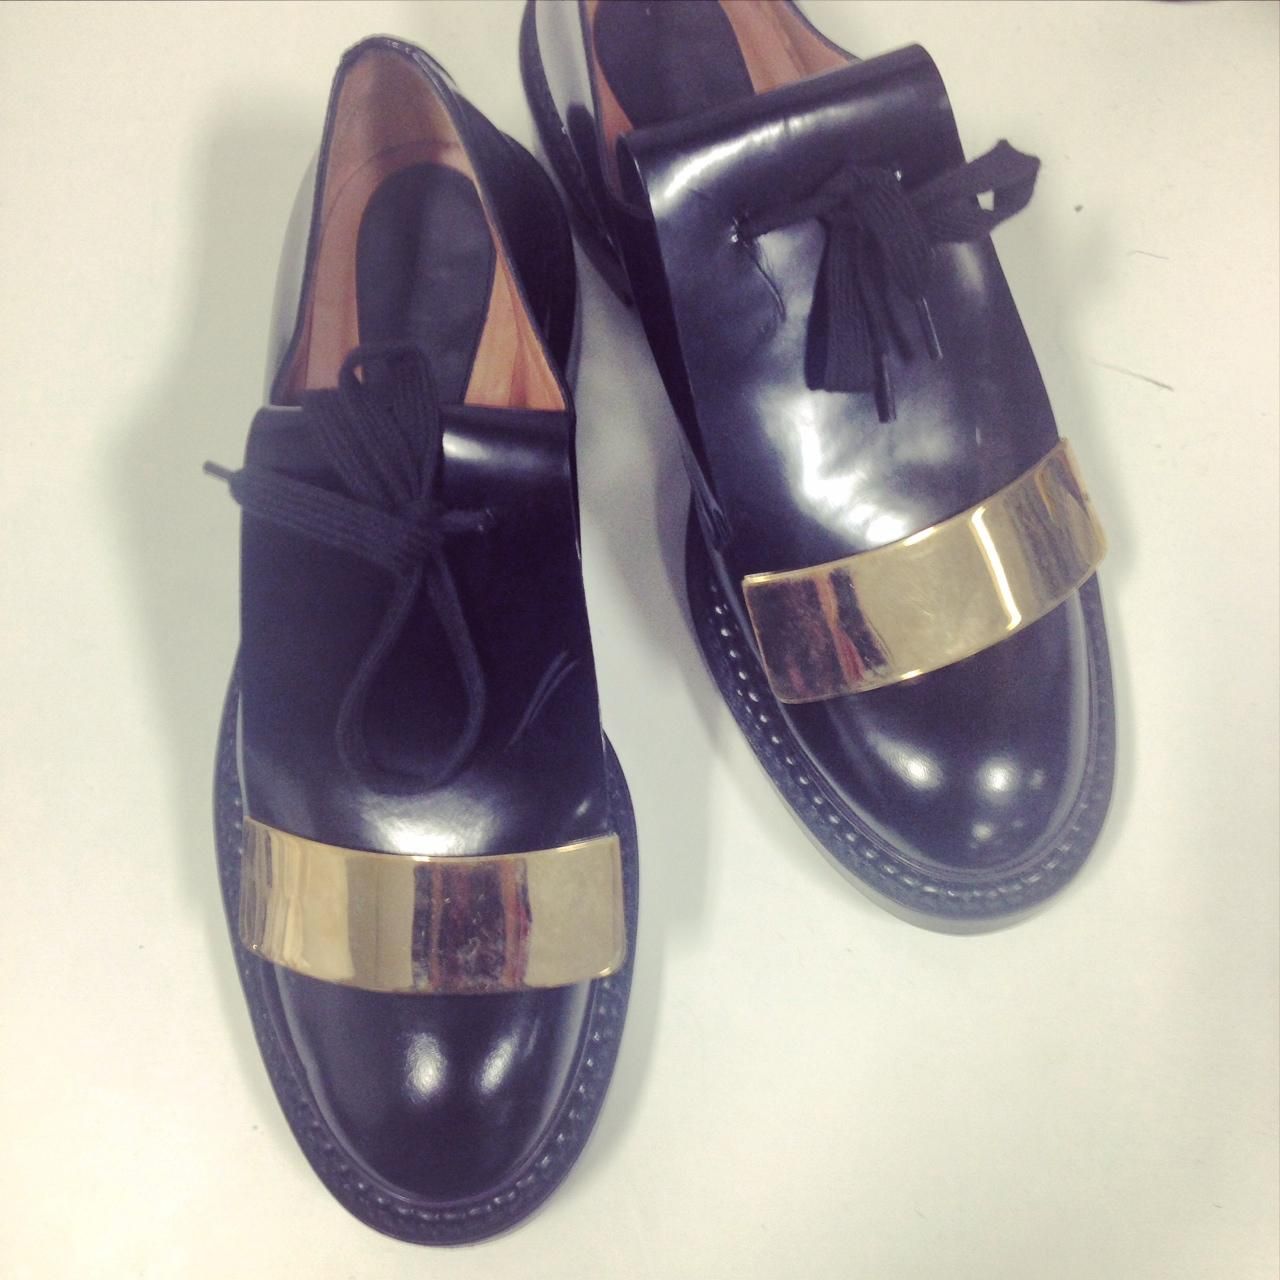 #ELLEfashioncupboard #firstlook… Marni + Don't miss all the latest arrivals: http://t.co/v3JJAXpSW7 http://t.co/cl1JfQTnJH